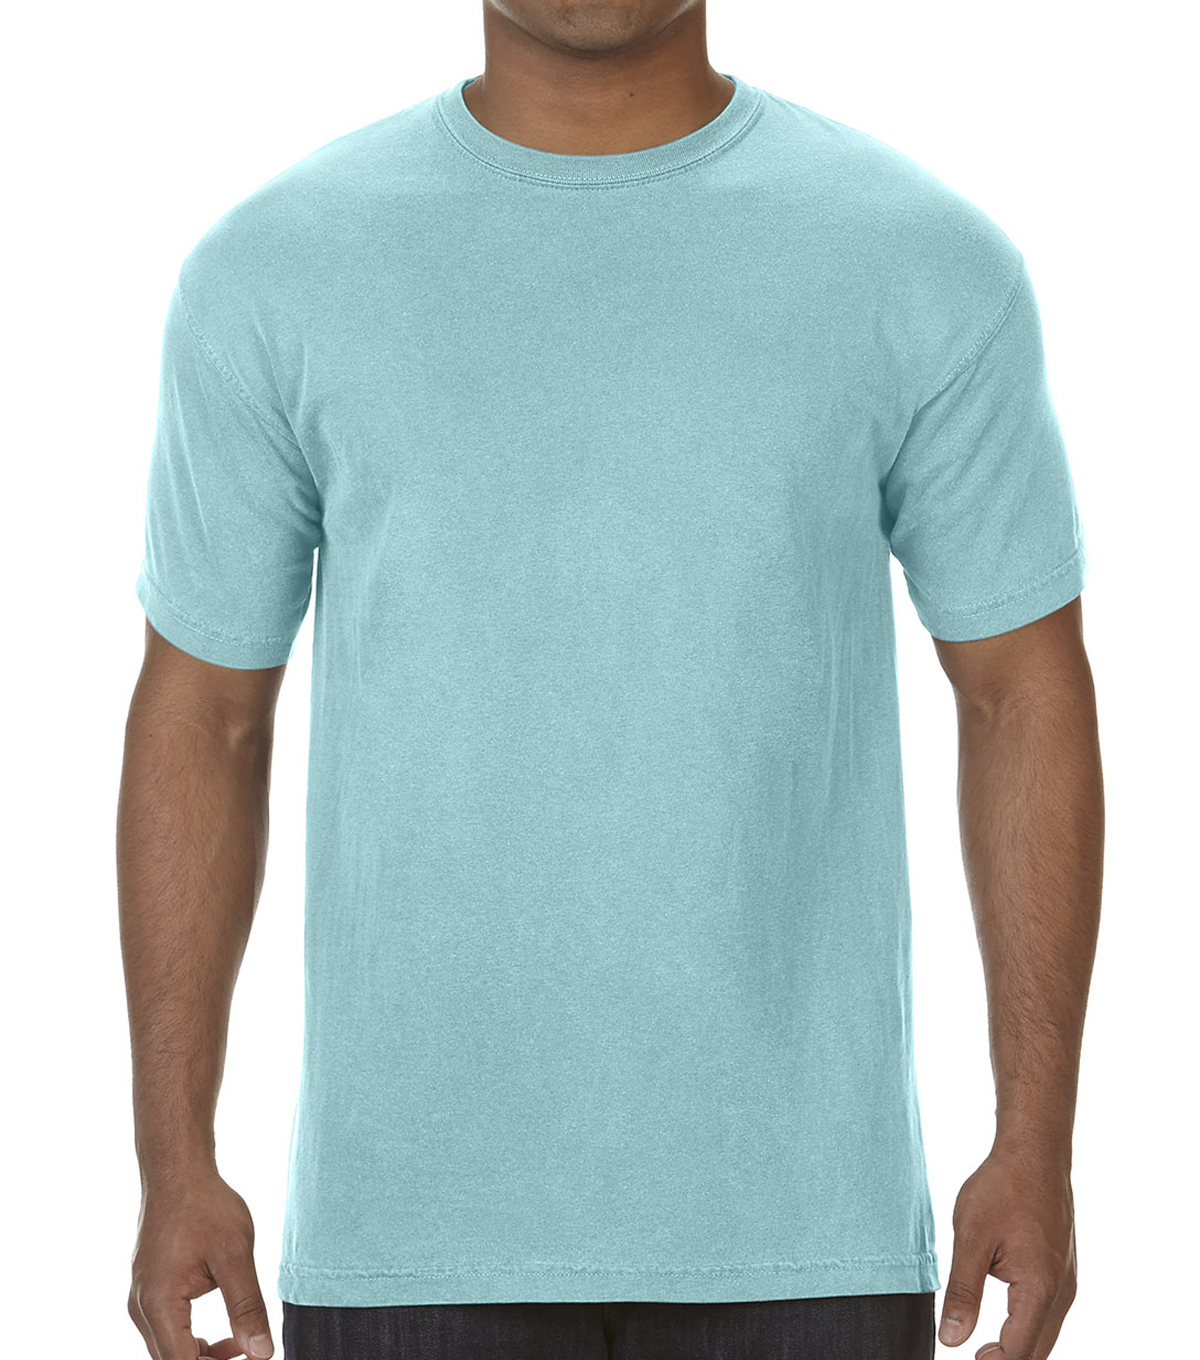 Gildan Adult Comfort Colors T-shirt Medium-Chalky Mint, Chalky Mint